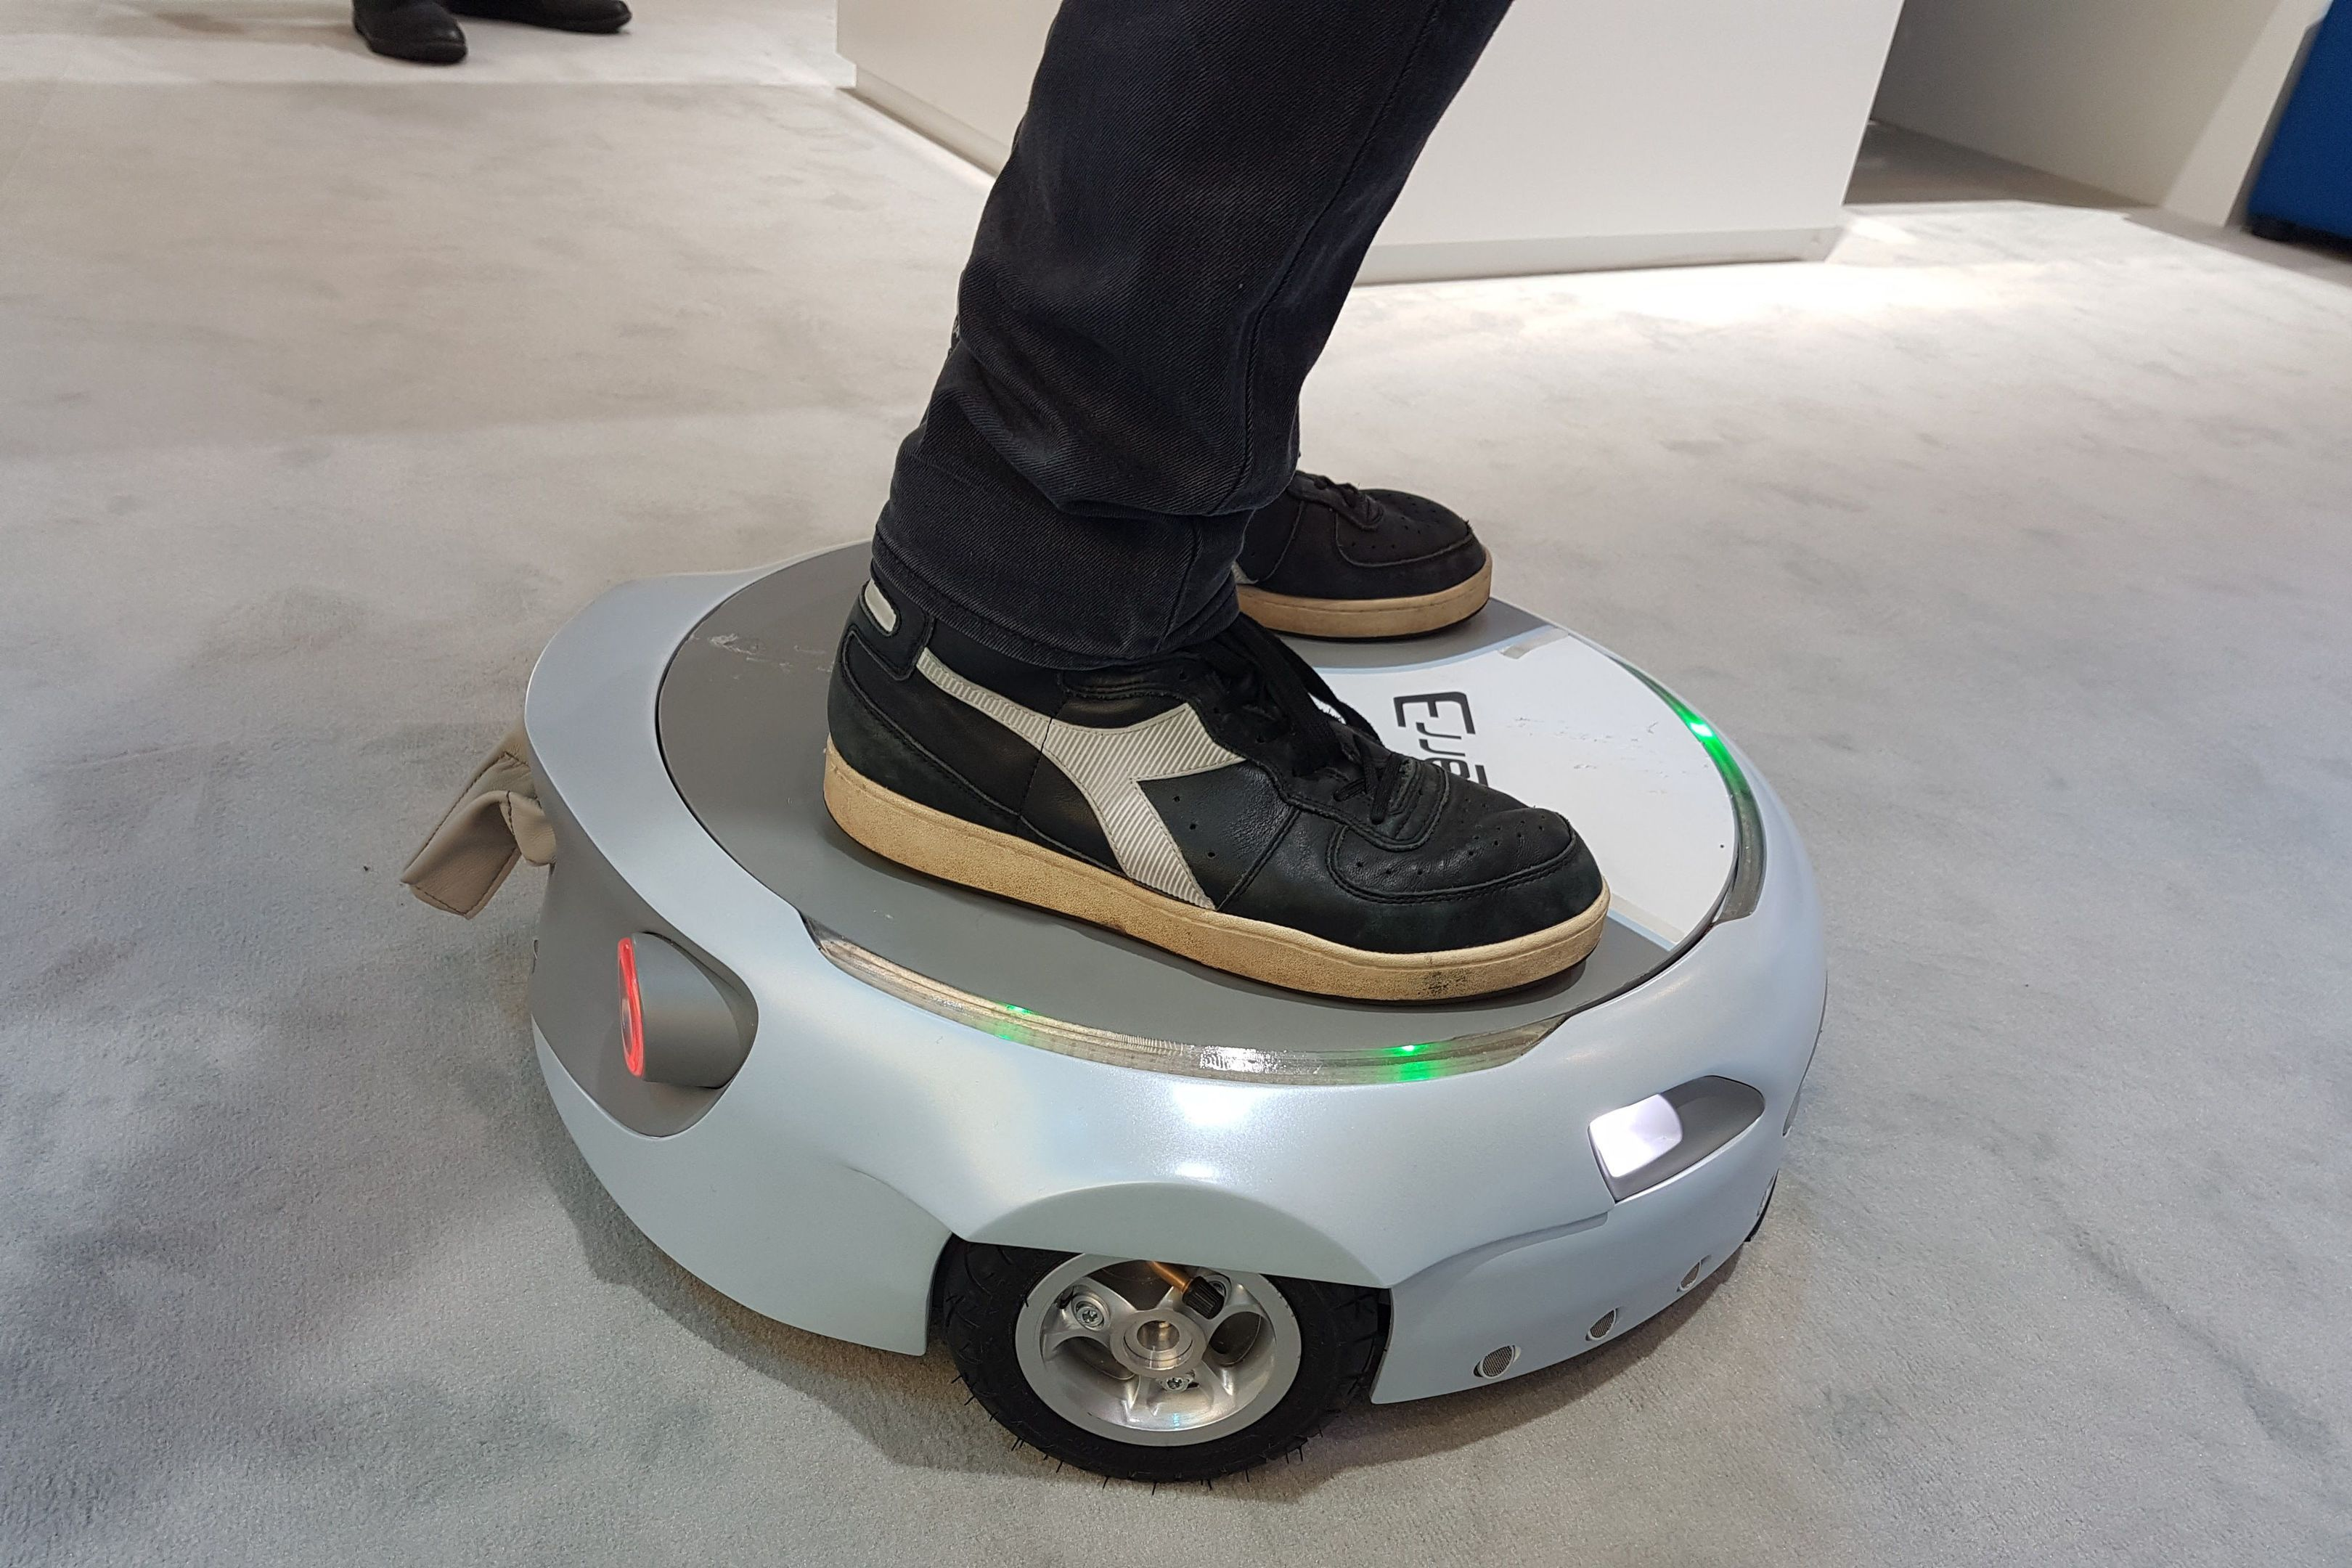 Real Working Hoverboard Fords Future City Hoverboards That Carry Shopping And Drone